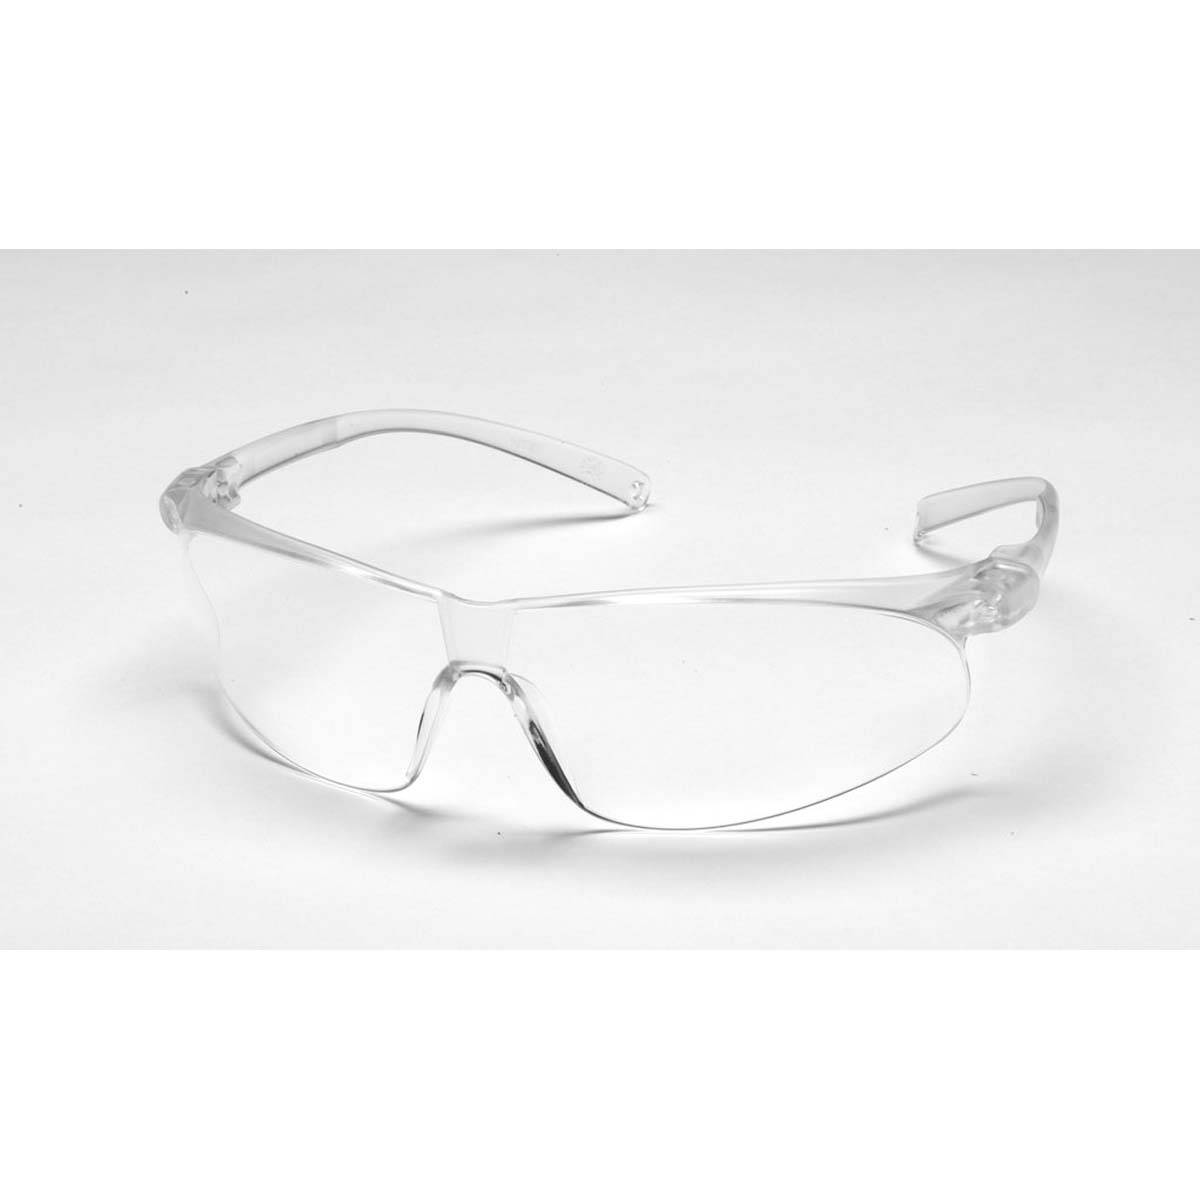 "3Mâ""¢ Virtuaâ""¢ Sport Protective Eyewear 11384-00000-20 Clear Anti-Fog Lens, Clear Temple"